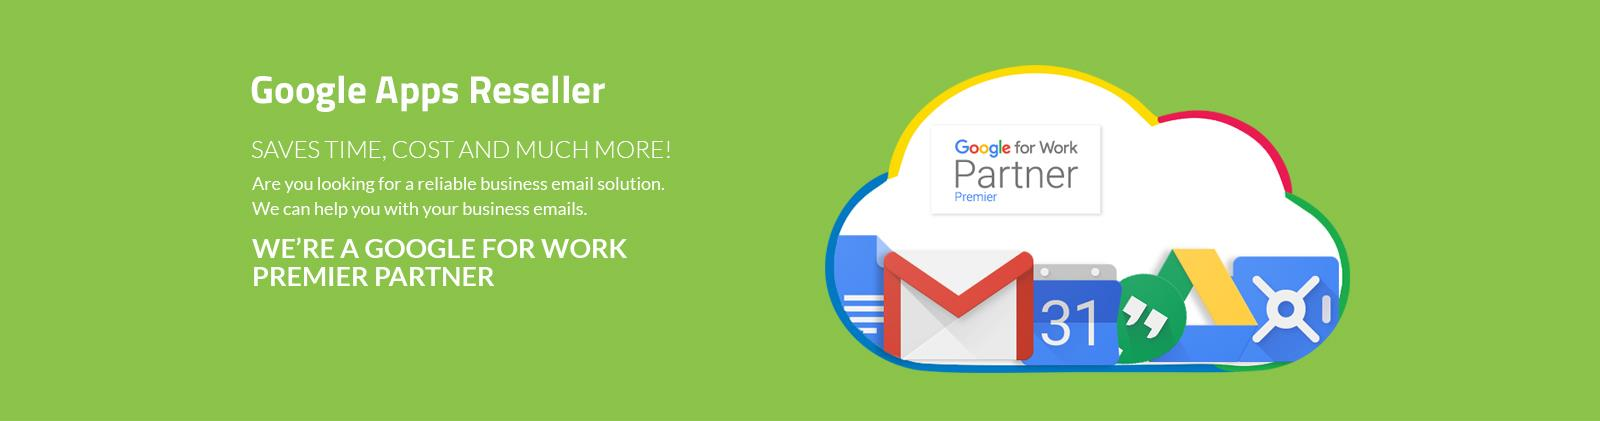 We Provides Google apps for business at best price in India. ... A web-based calendar application that enables , employees to work together efficiently and helps.....http://theplanetapps.in/  google apps for work pricing in gurgaon,  cost o - by Google Authorised Reseller in india | 011- 42333793, Delhi